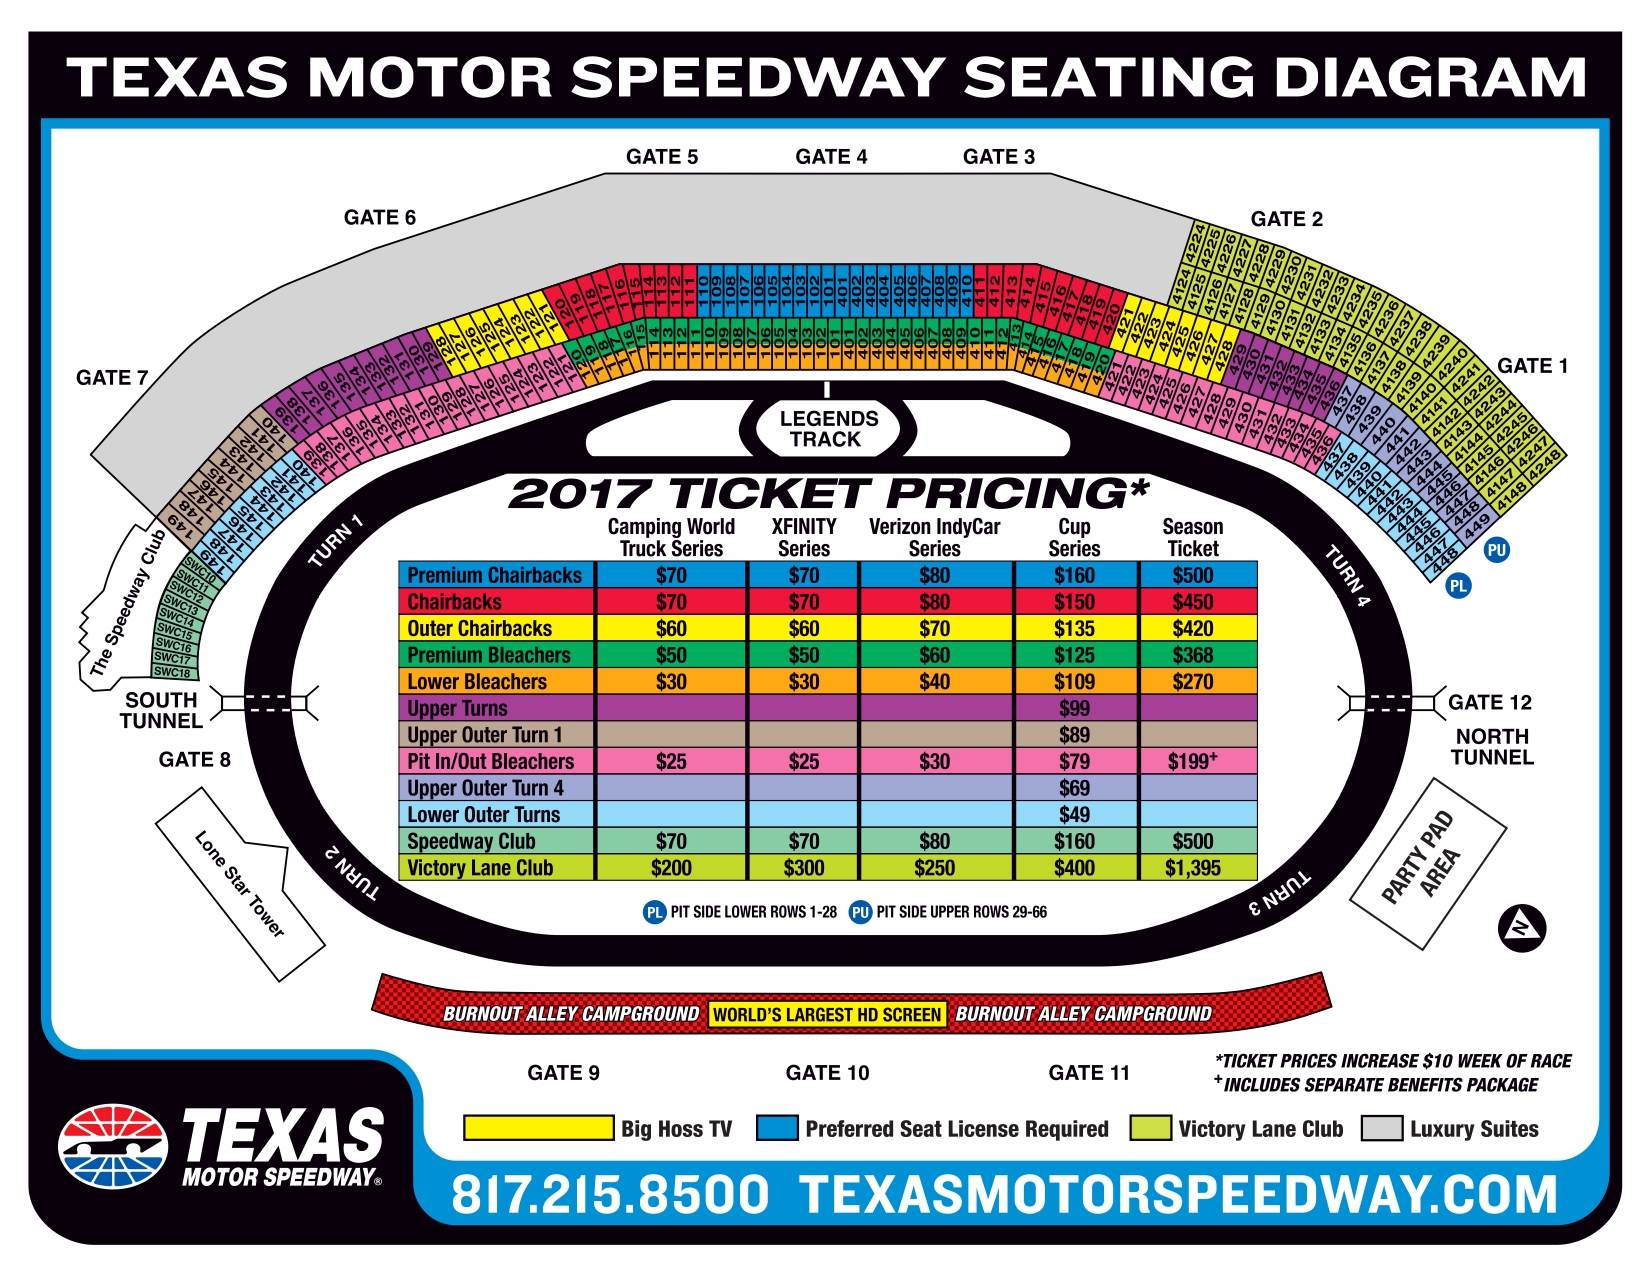 Texas Motor Speedway Seating Chart with Seat and Row Numbers, party pad area, elevators, club, entry gates, suites, rest rooms, start-finish line, towers, etc.